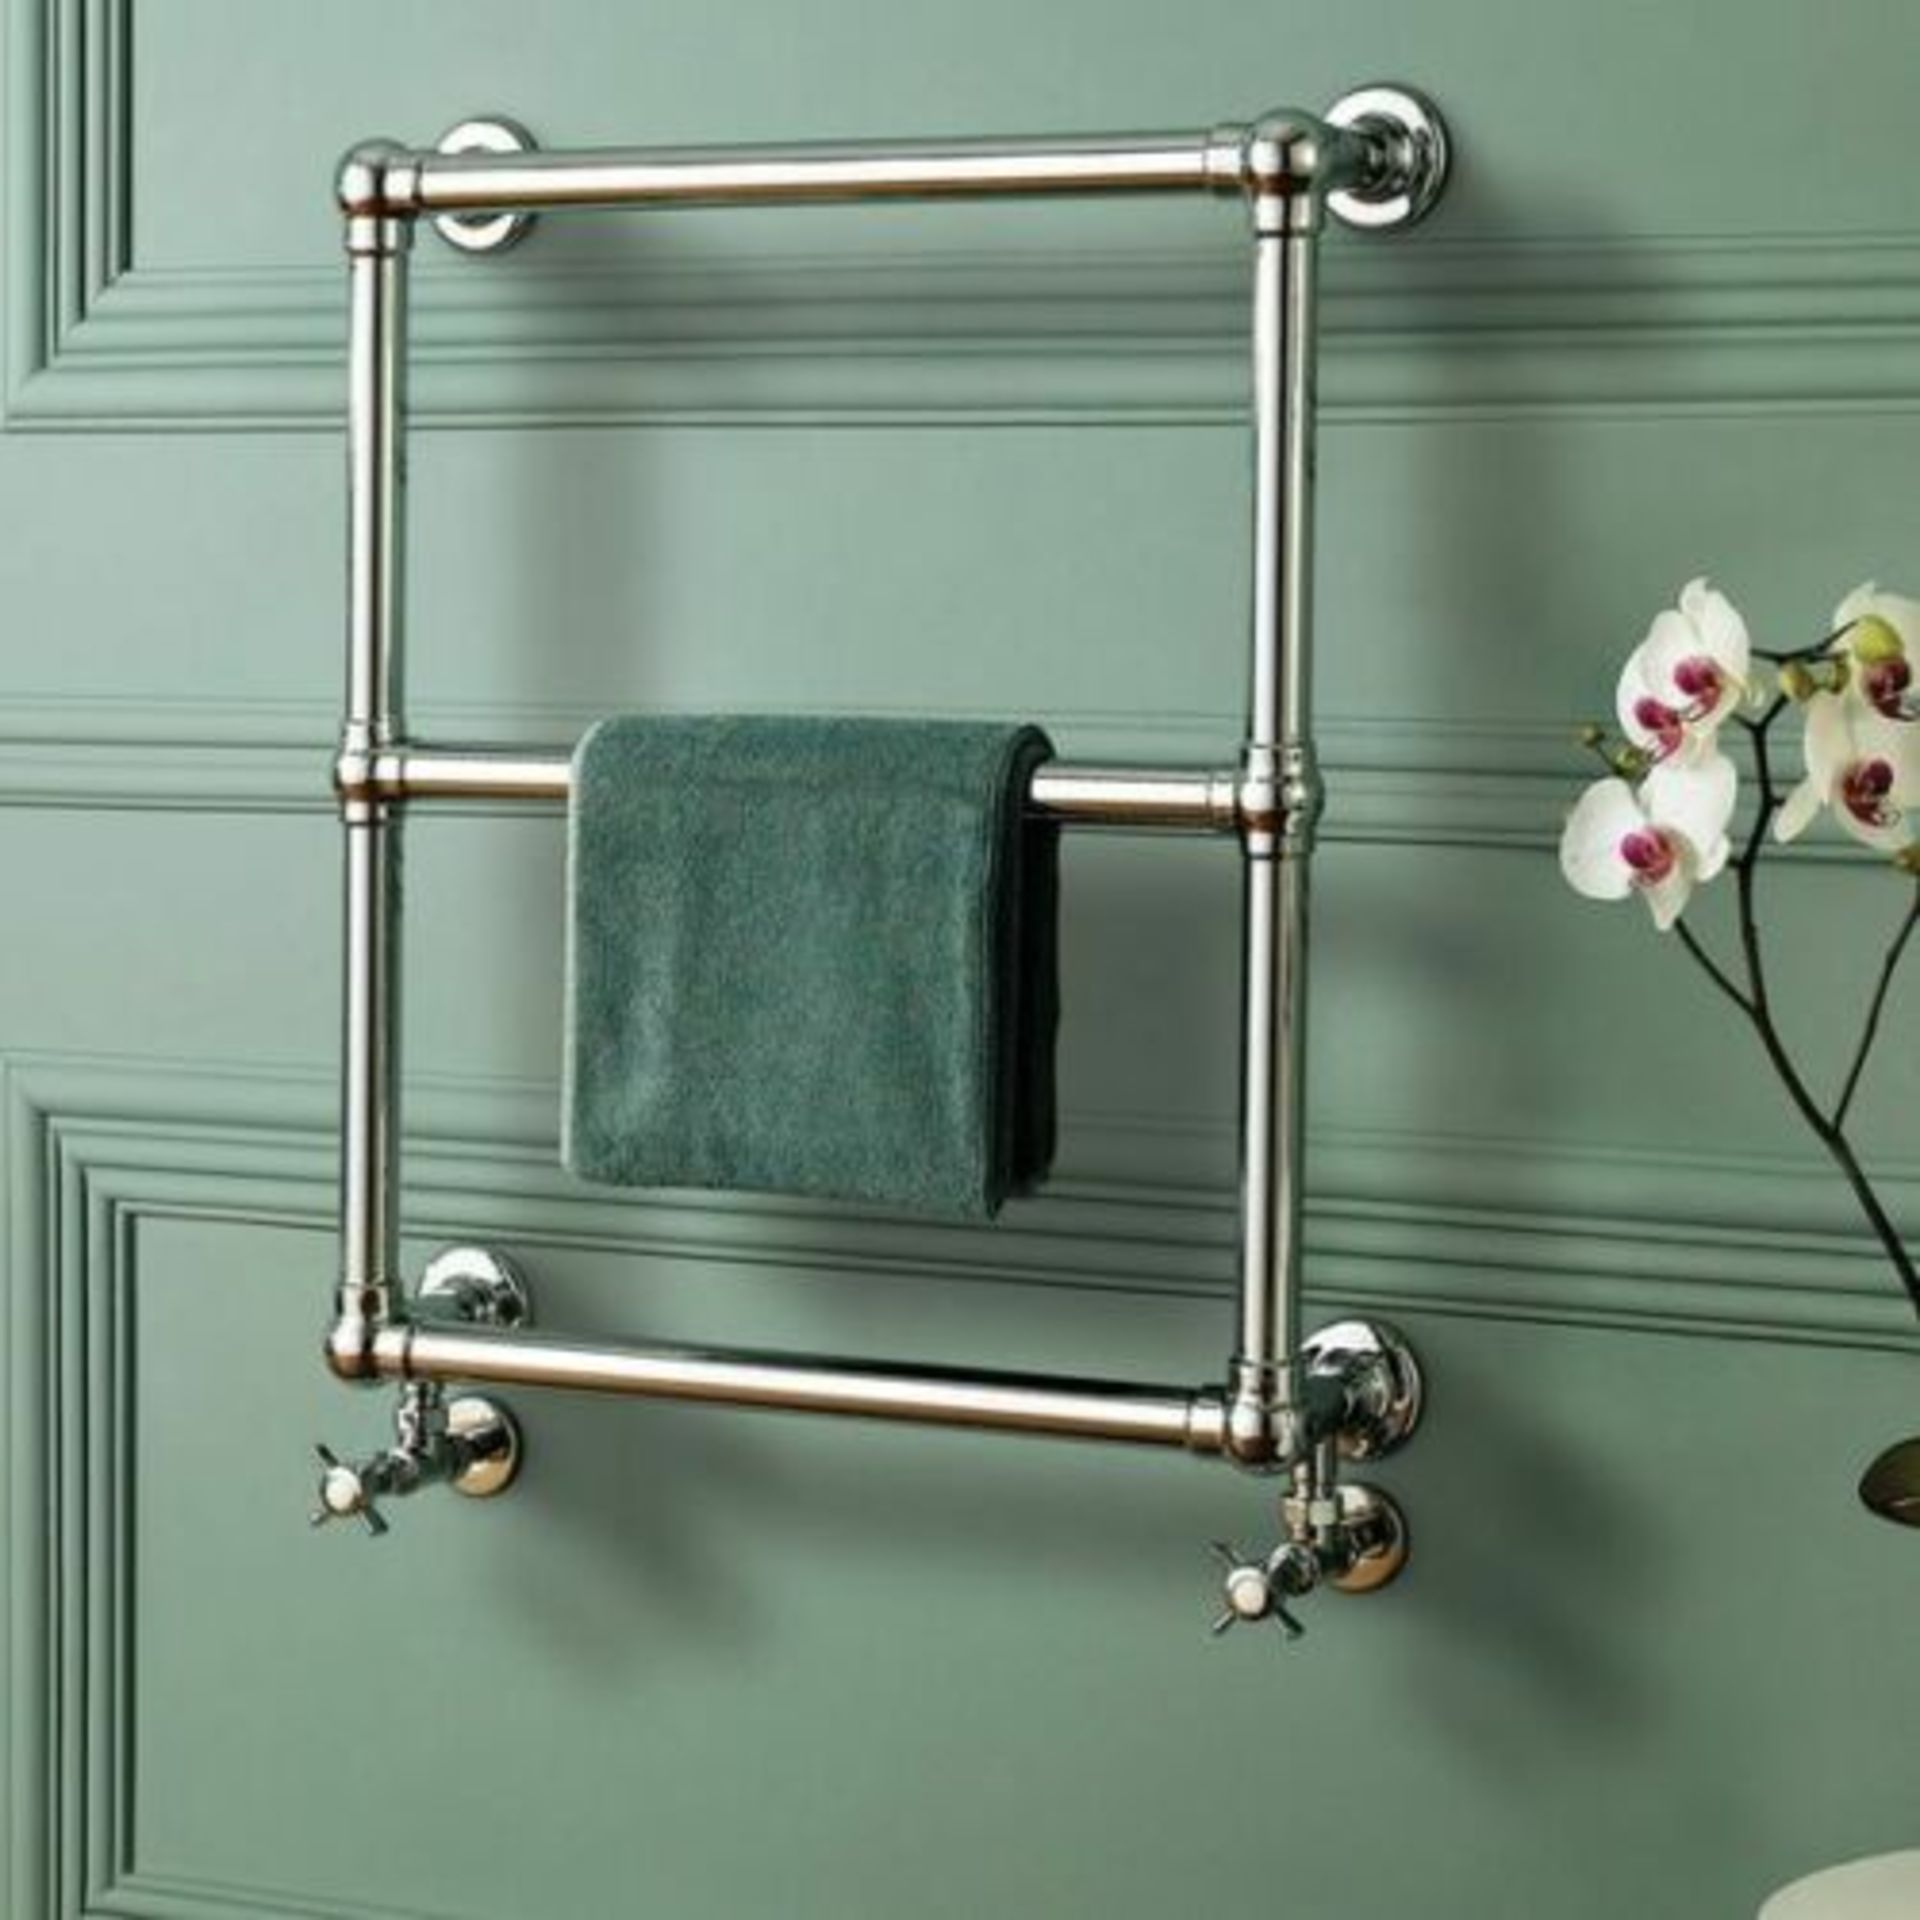 Lot 18 - Fervent Traditional Ball Jointed Towel Radiator 686mm x 600mm Brand new, factory sealed packaging.